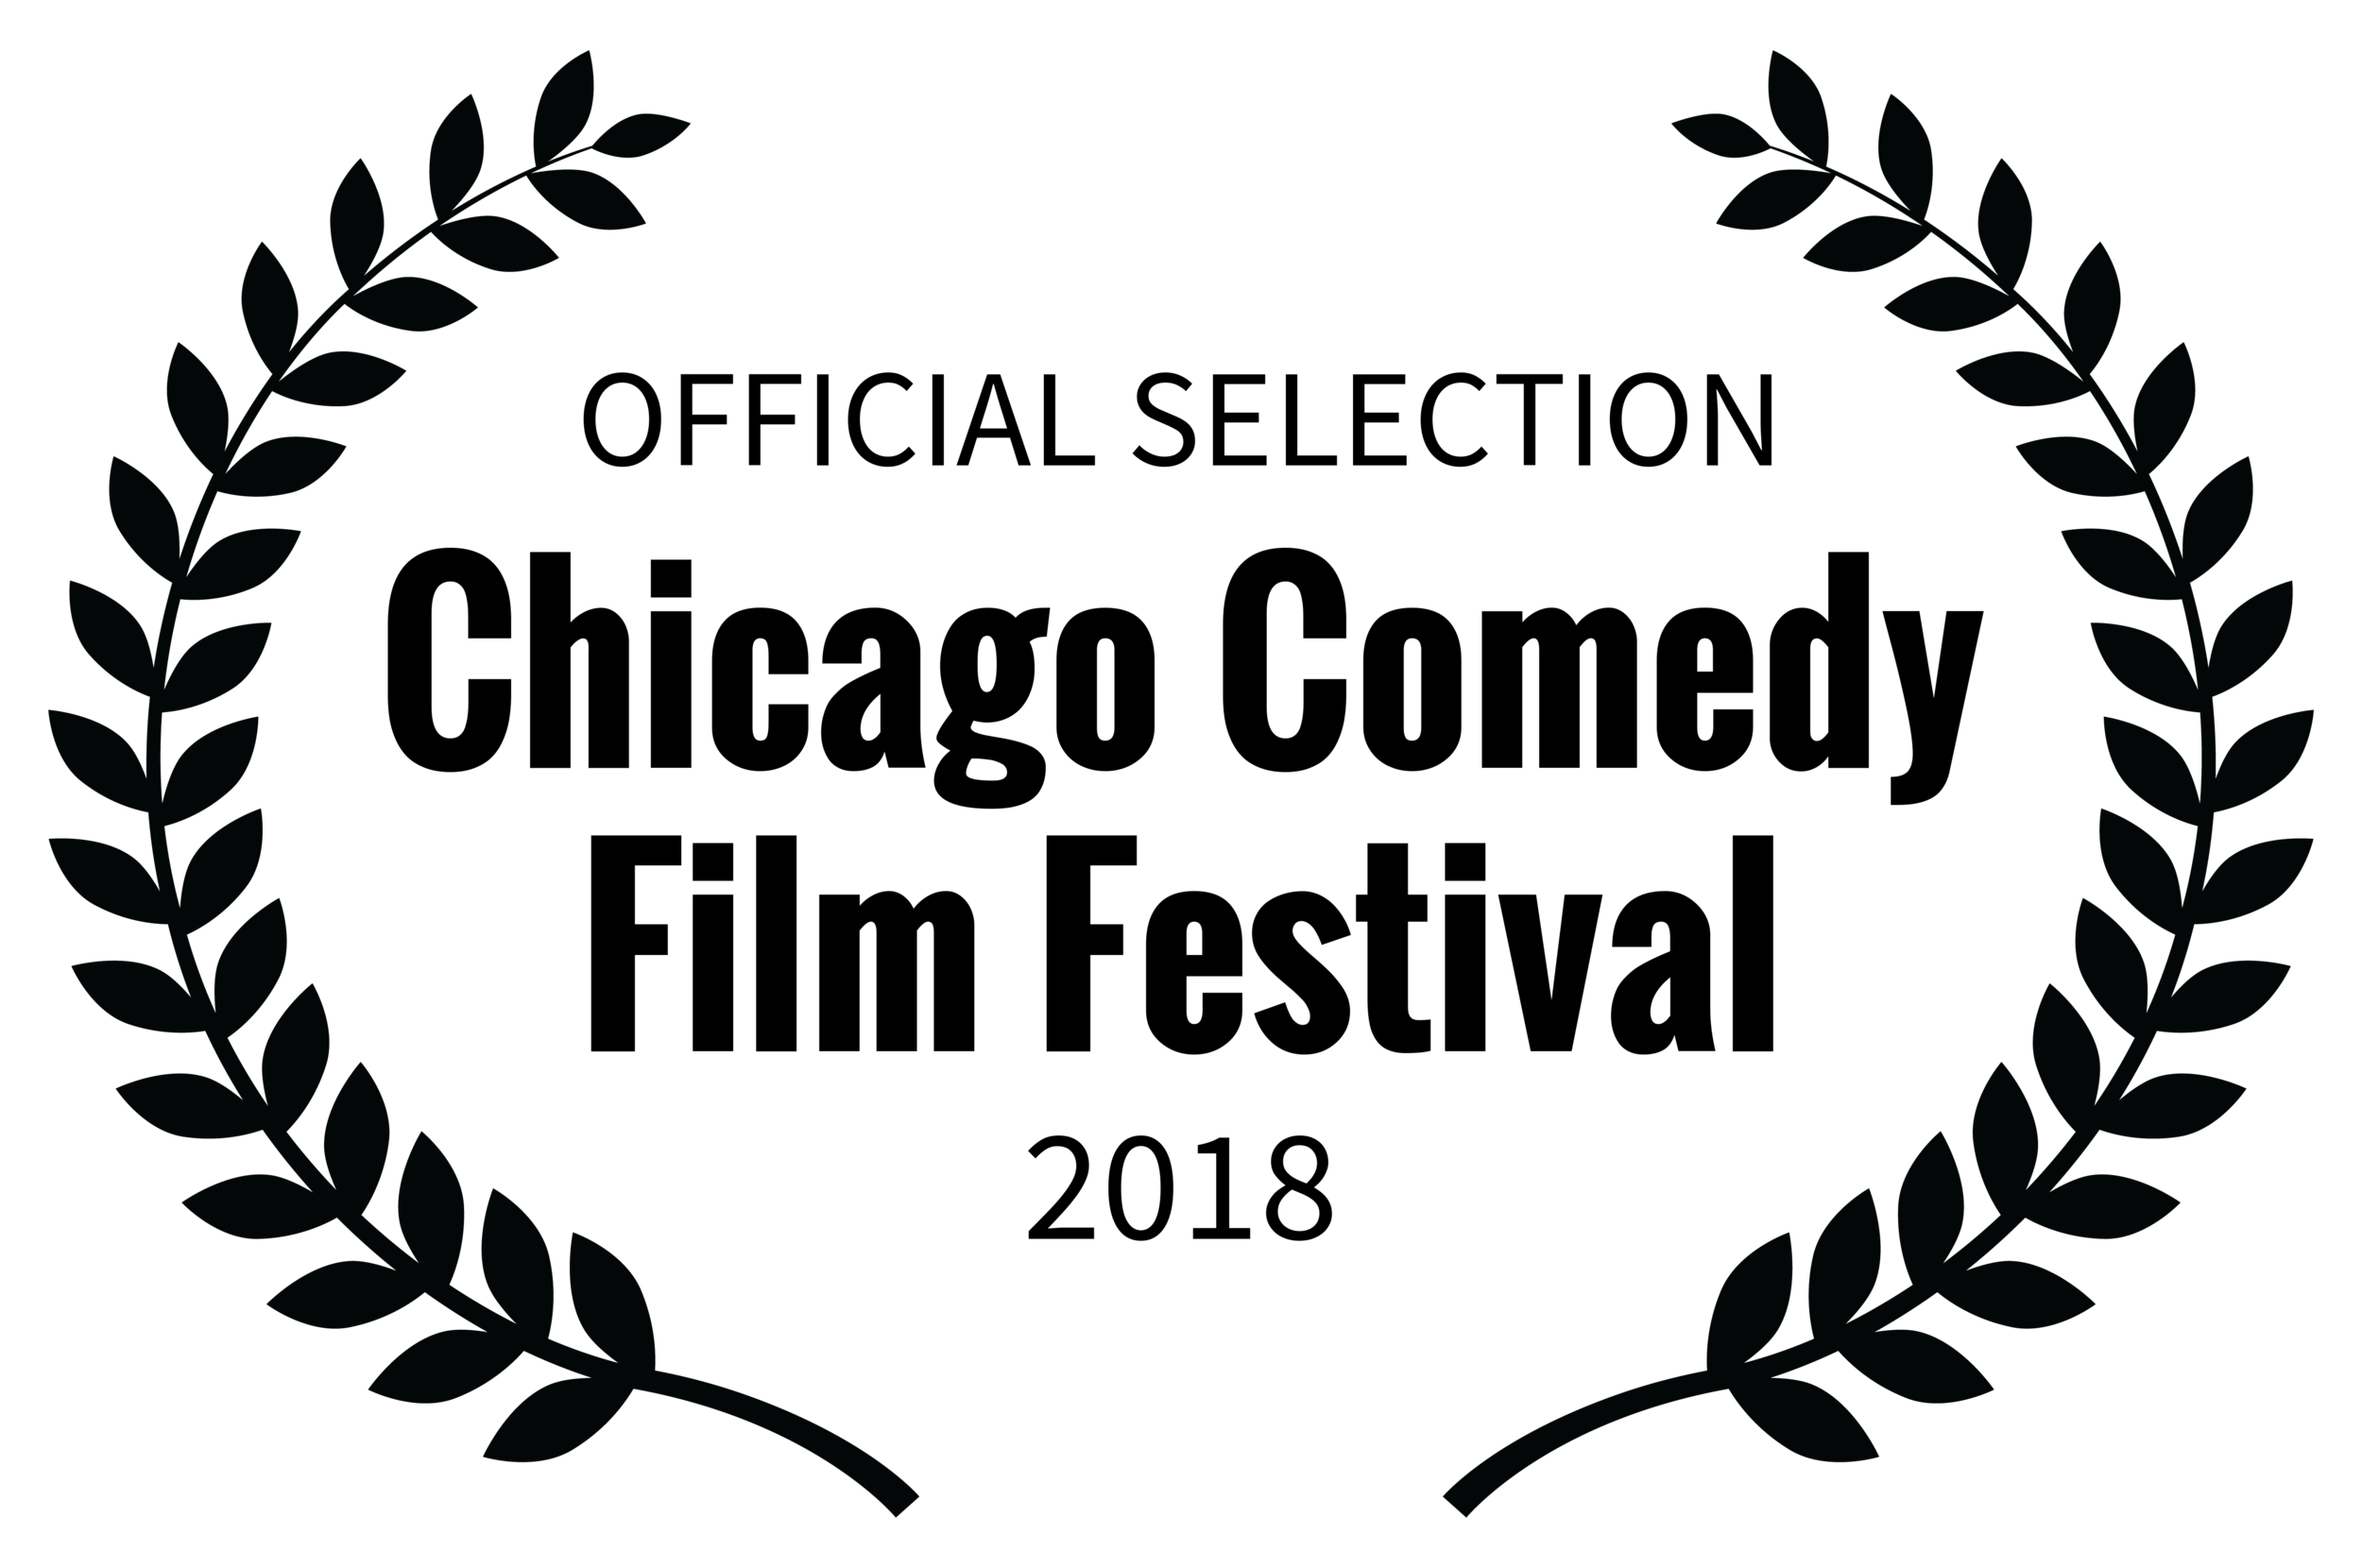 OFFICIALSELECTION-ChicagoComedyFilmFestival-2018.png